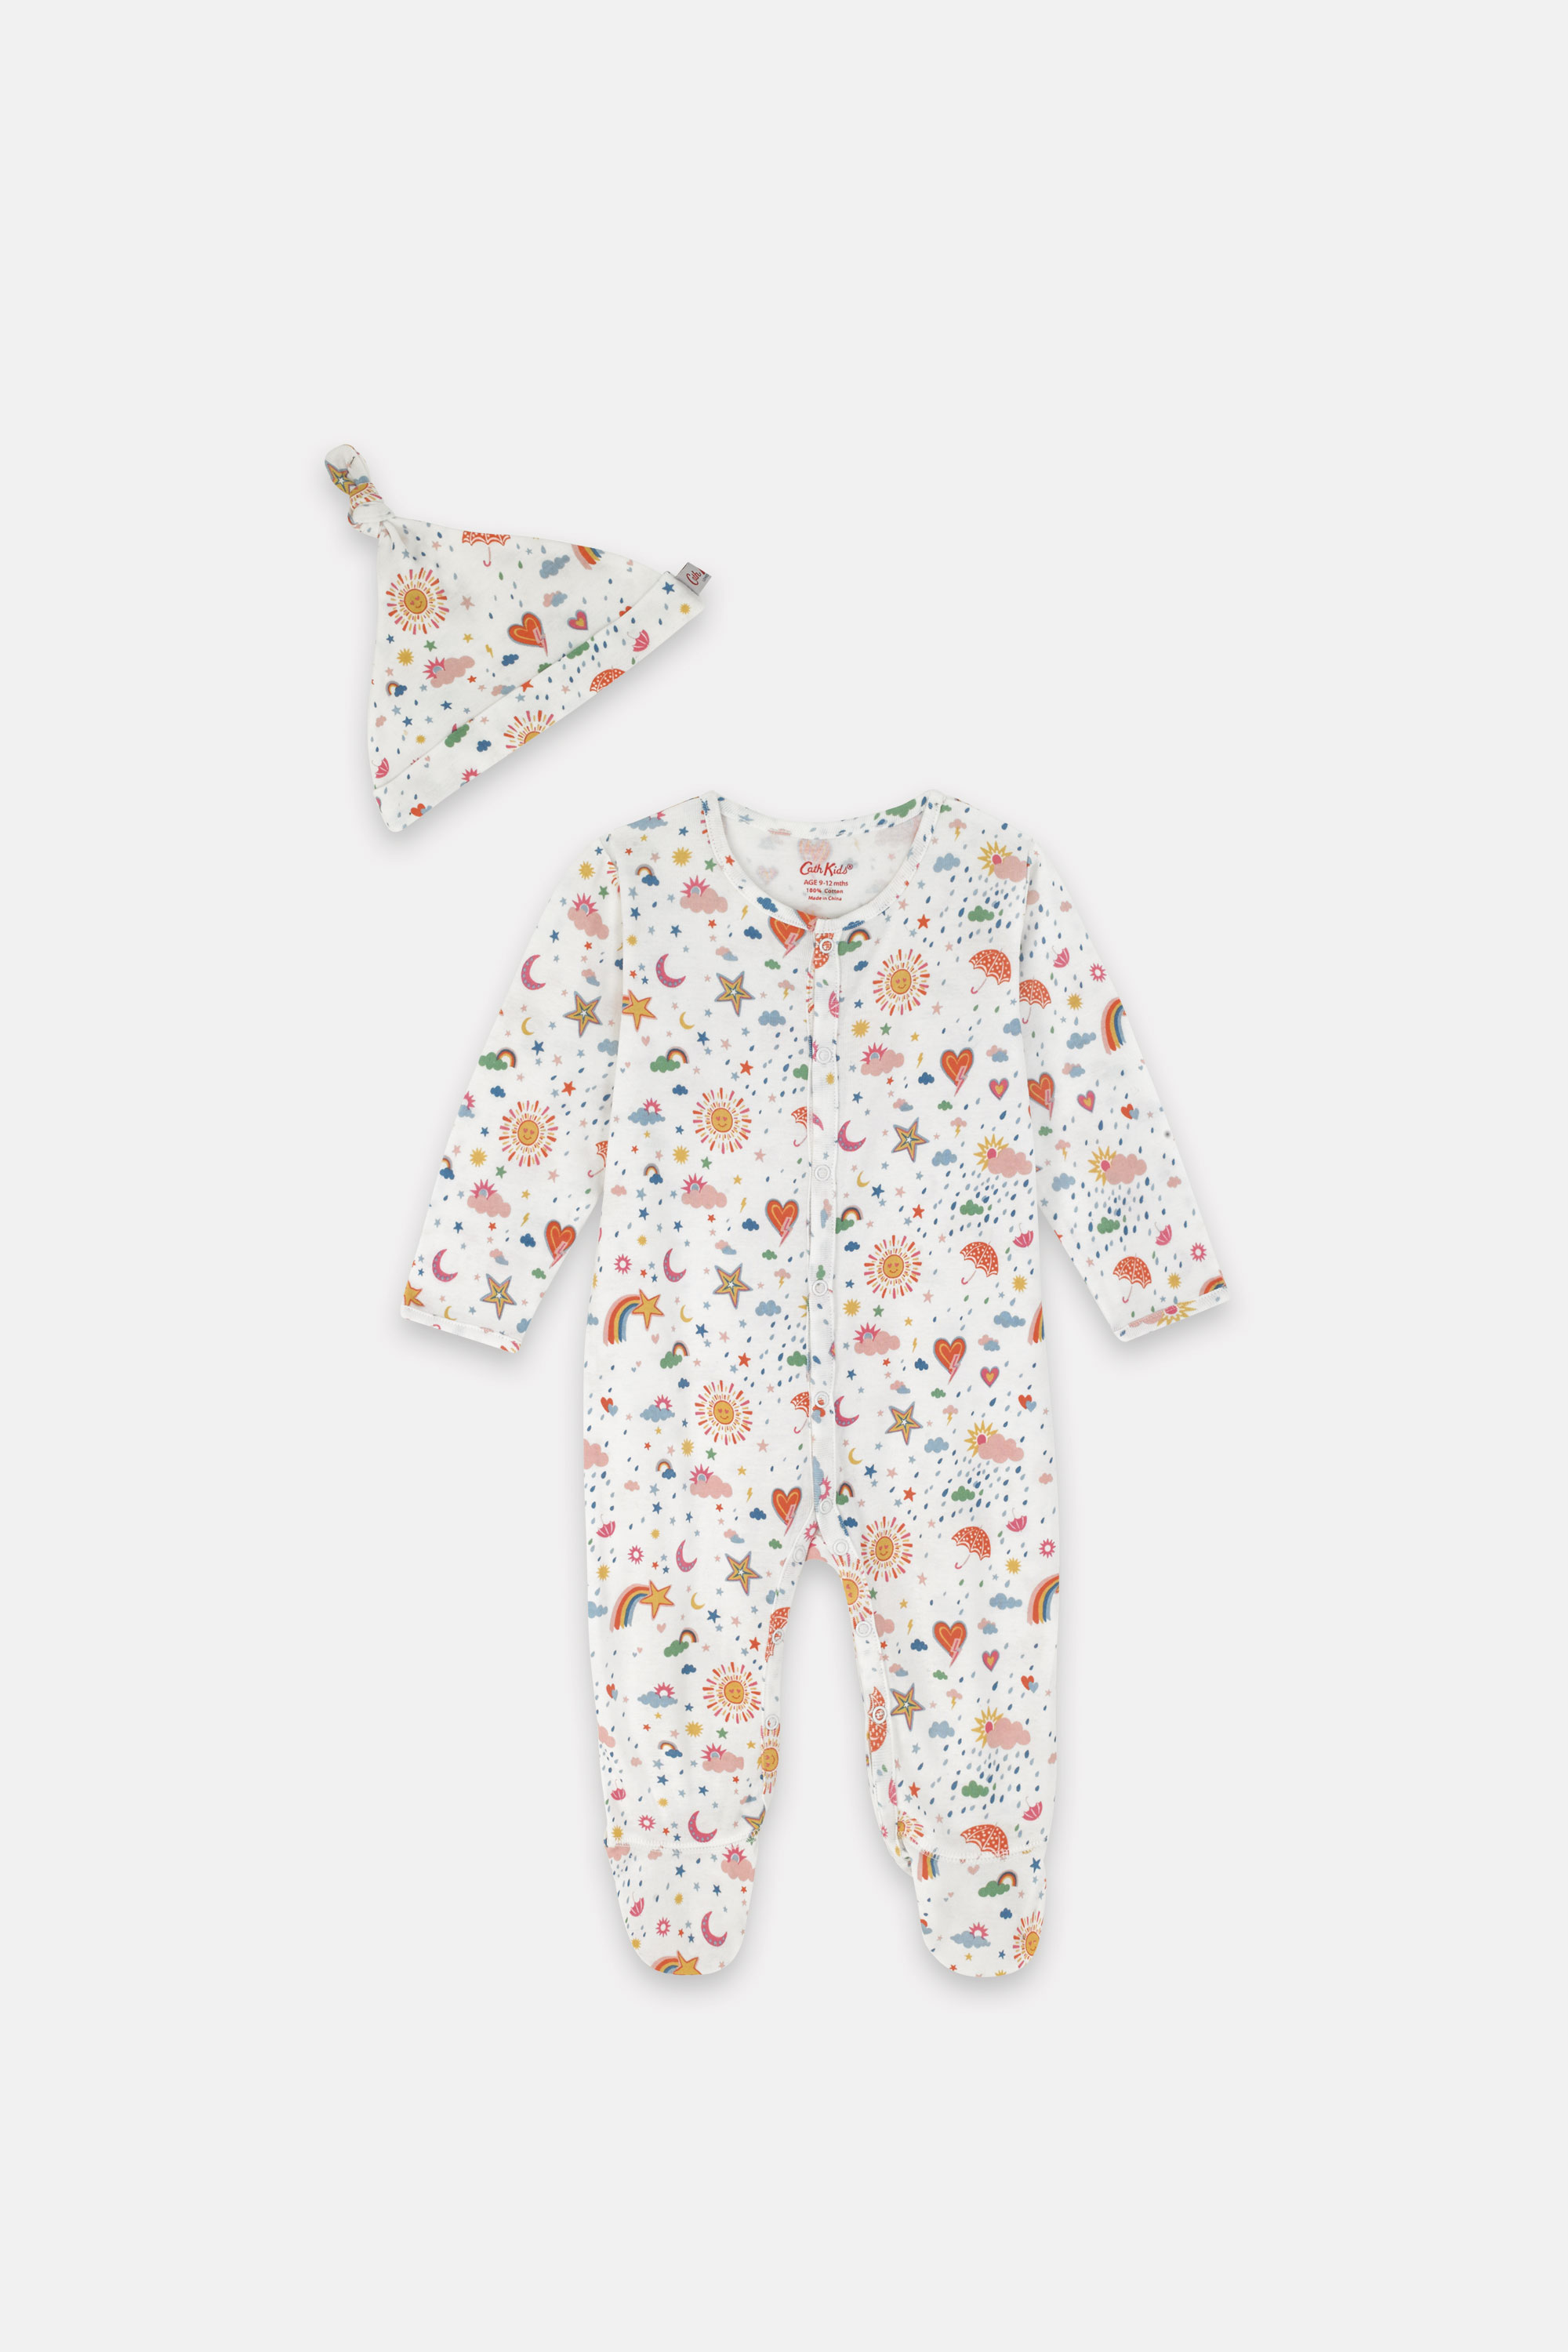 Cath Kidston Weather Print Bodysuit and Hat Set in Ivory, 6-9 Mo